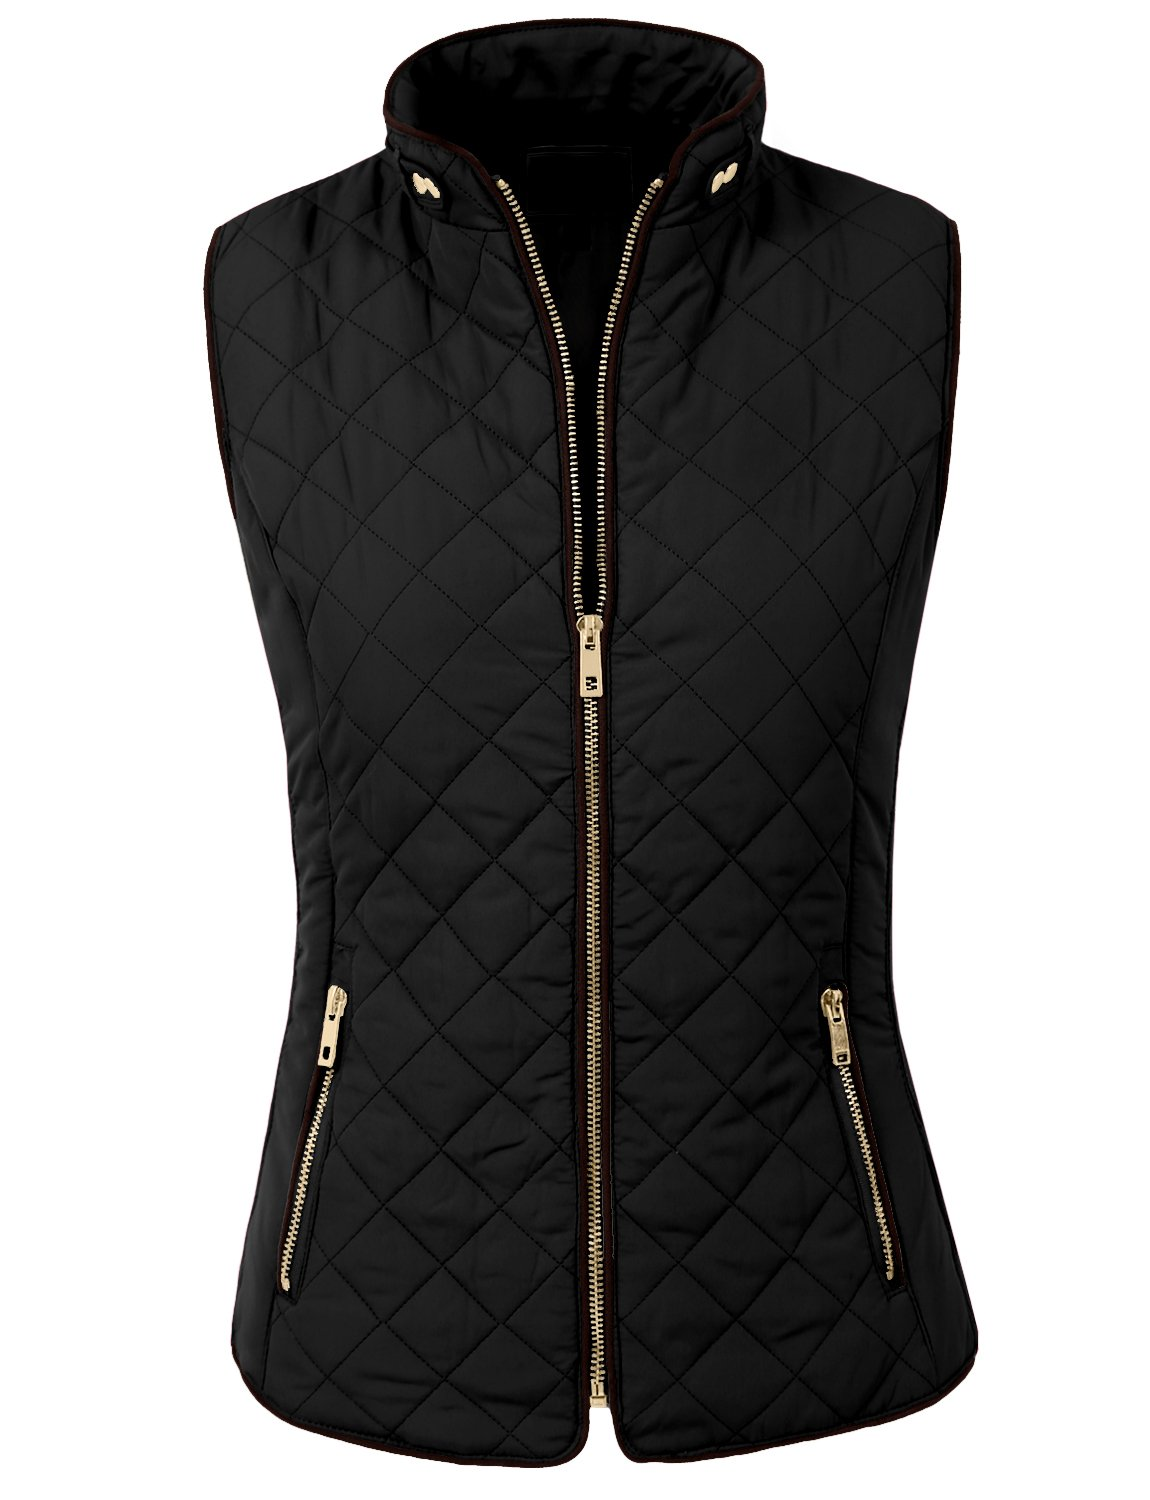 NE PEOPLE Womens Lightweight Quilted Zip Vest, Small, NEWV40BLACK